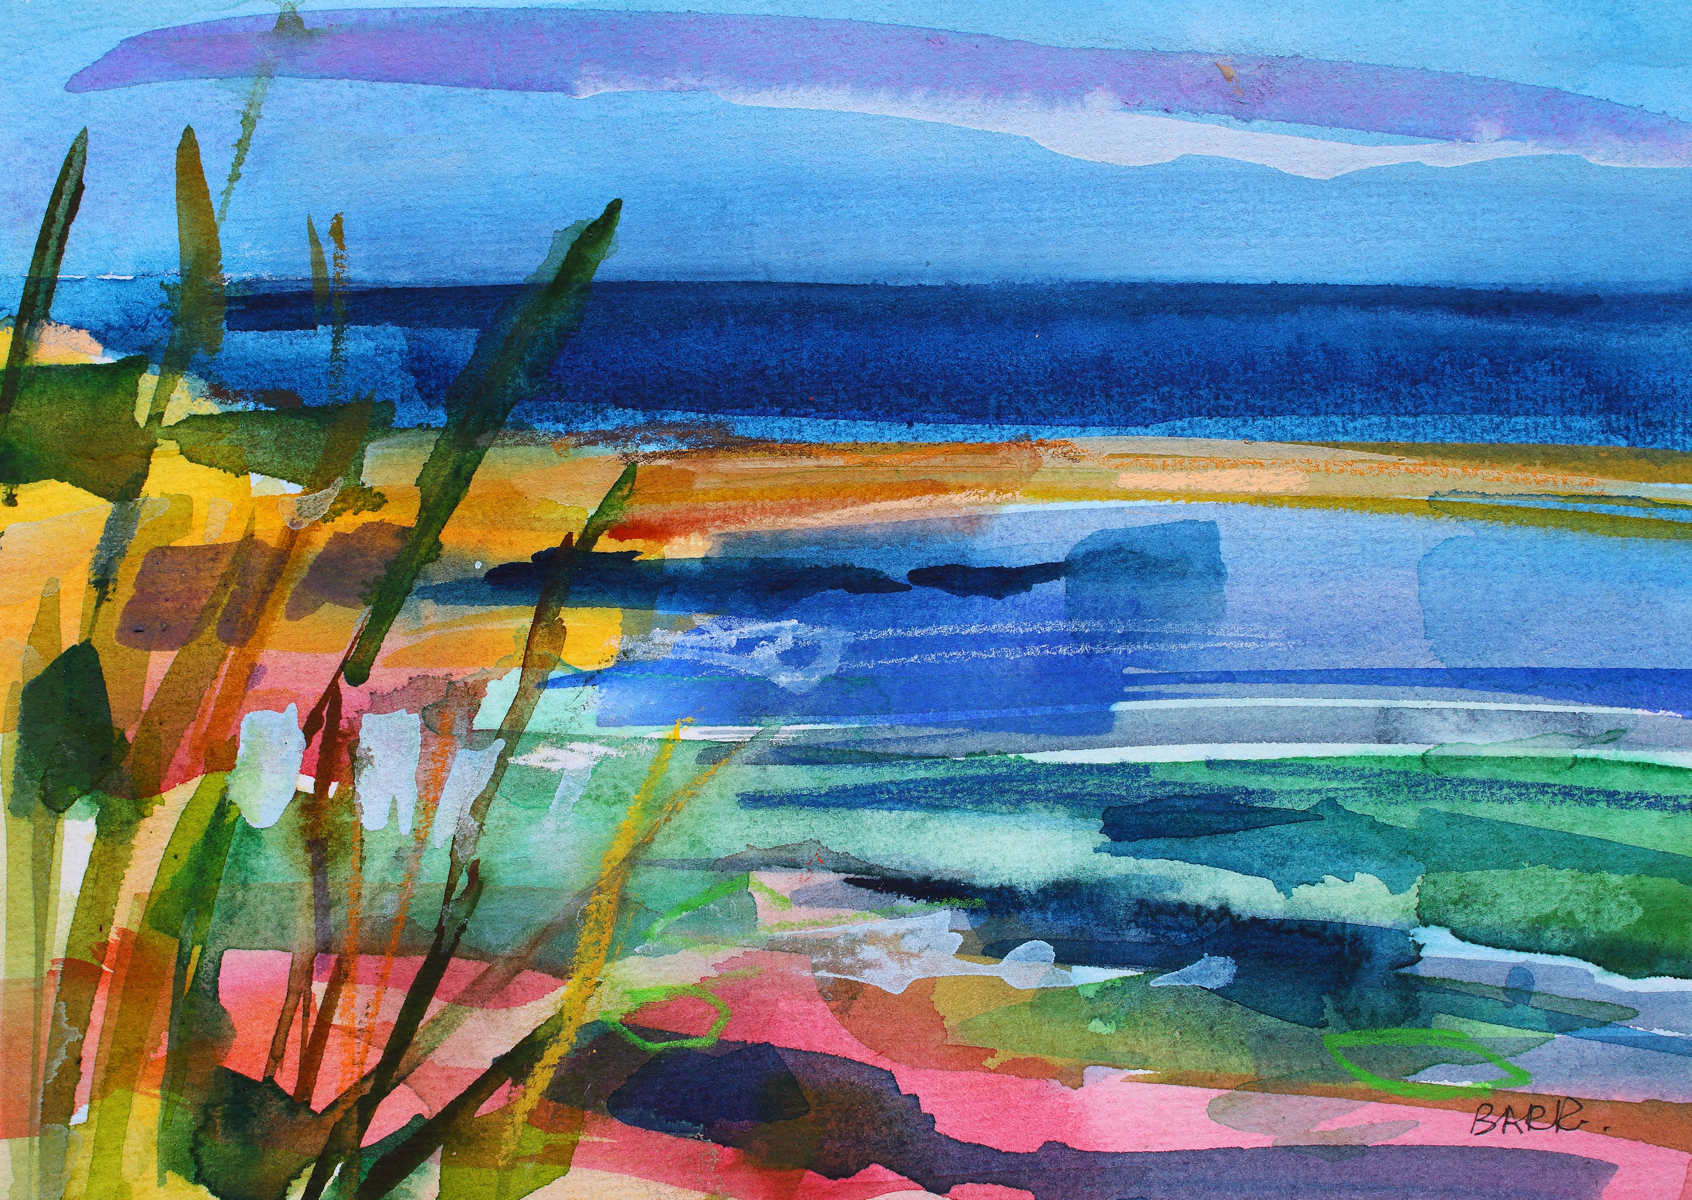 Watercolour titled North East Shore by Shona Barr